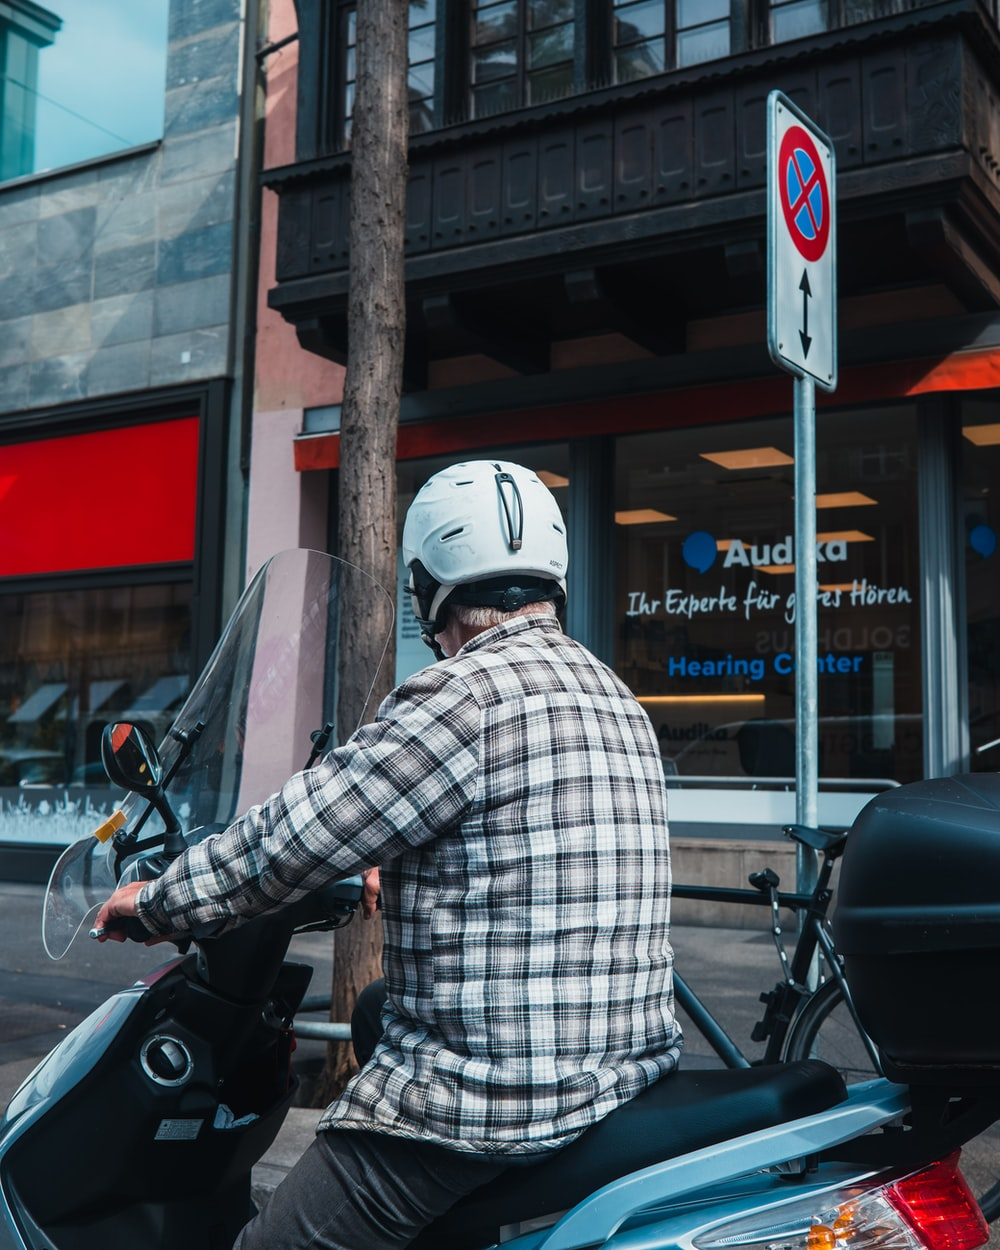 man in white and blue plaid dress shirt riding motorcycle